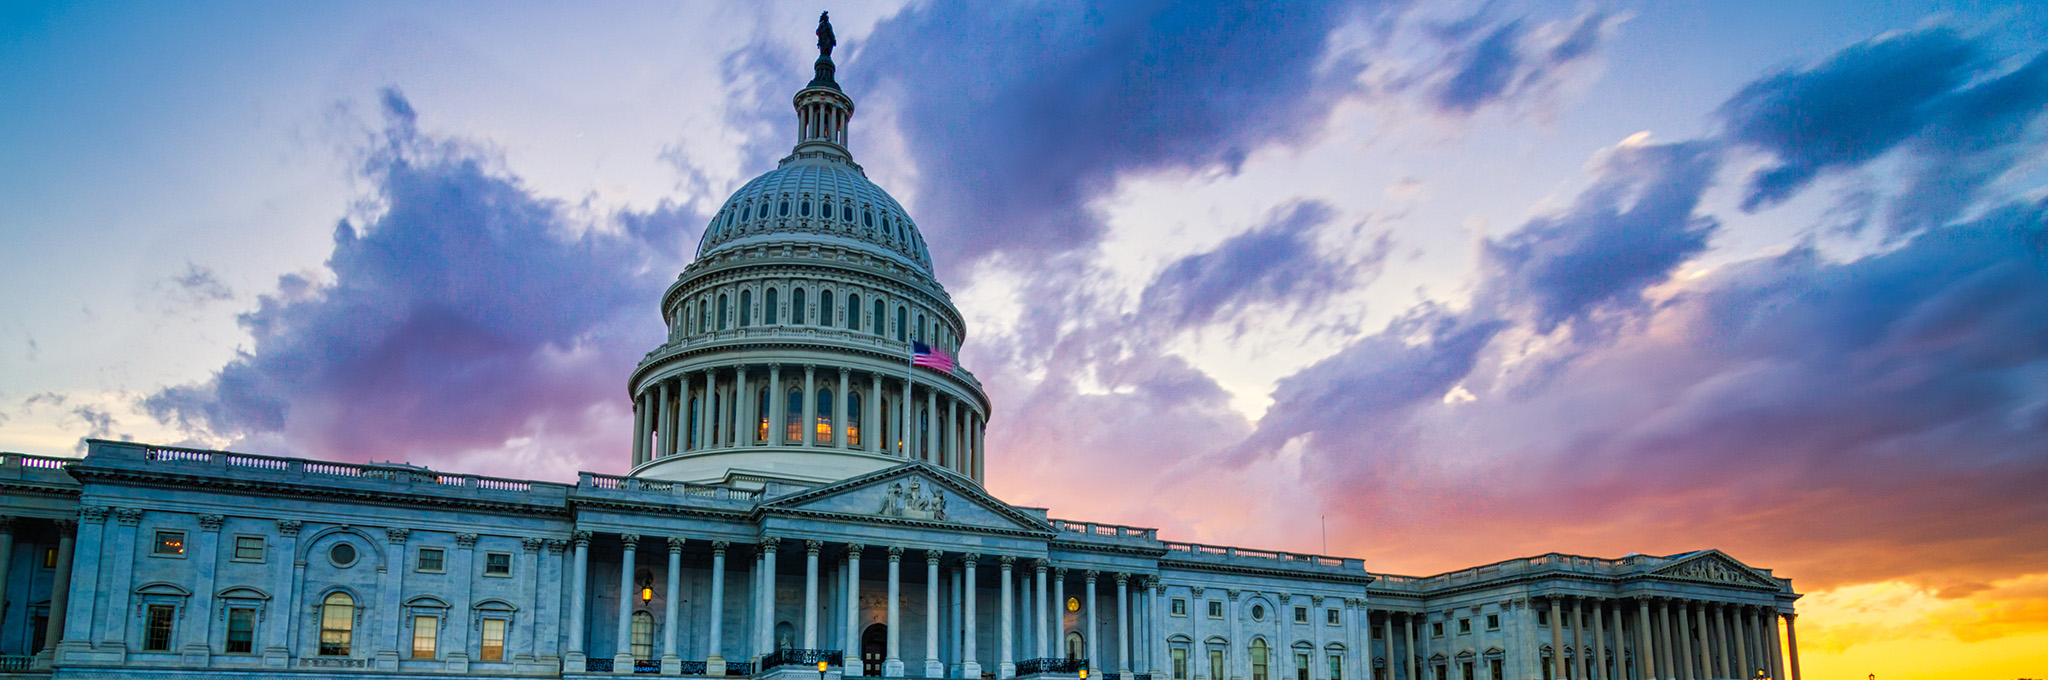 Apply Now: Scenic America Policy and Program Director